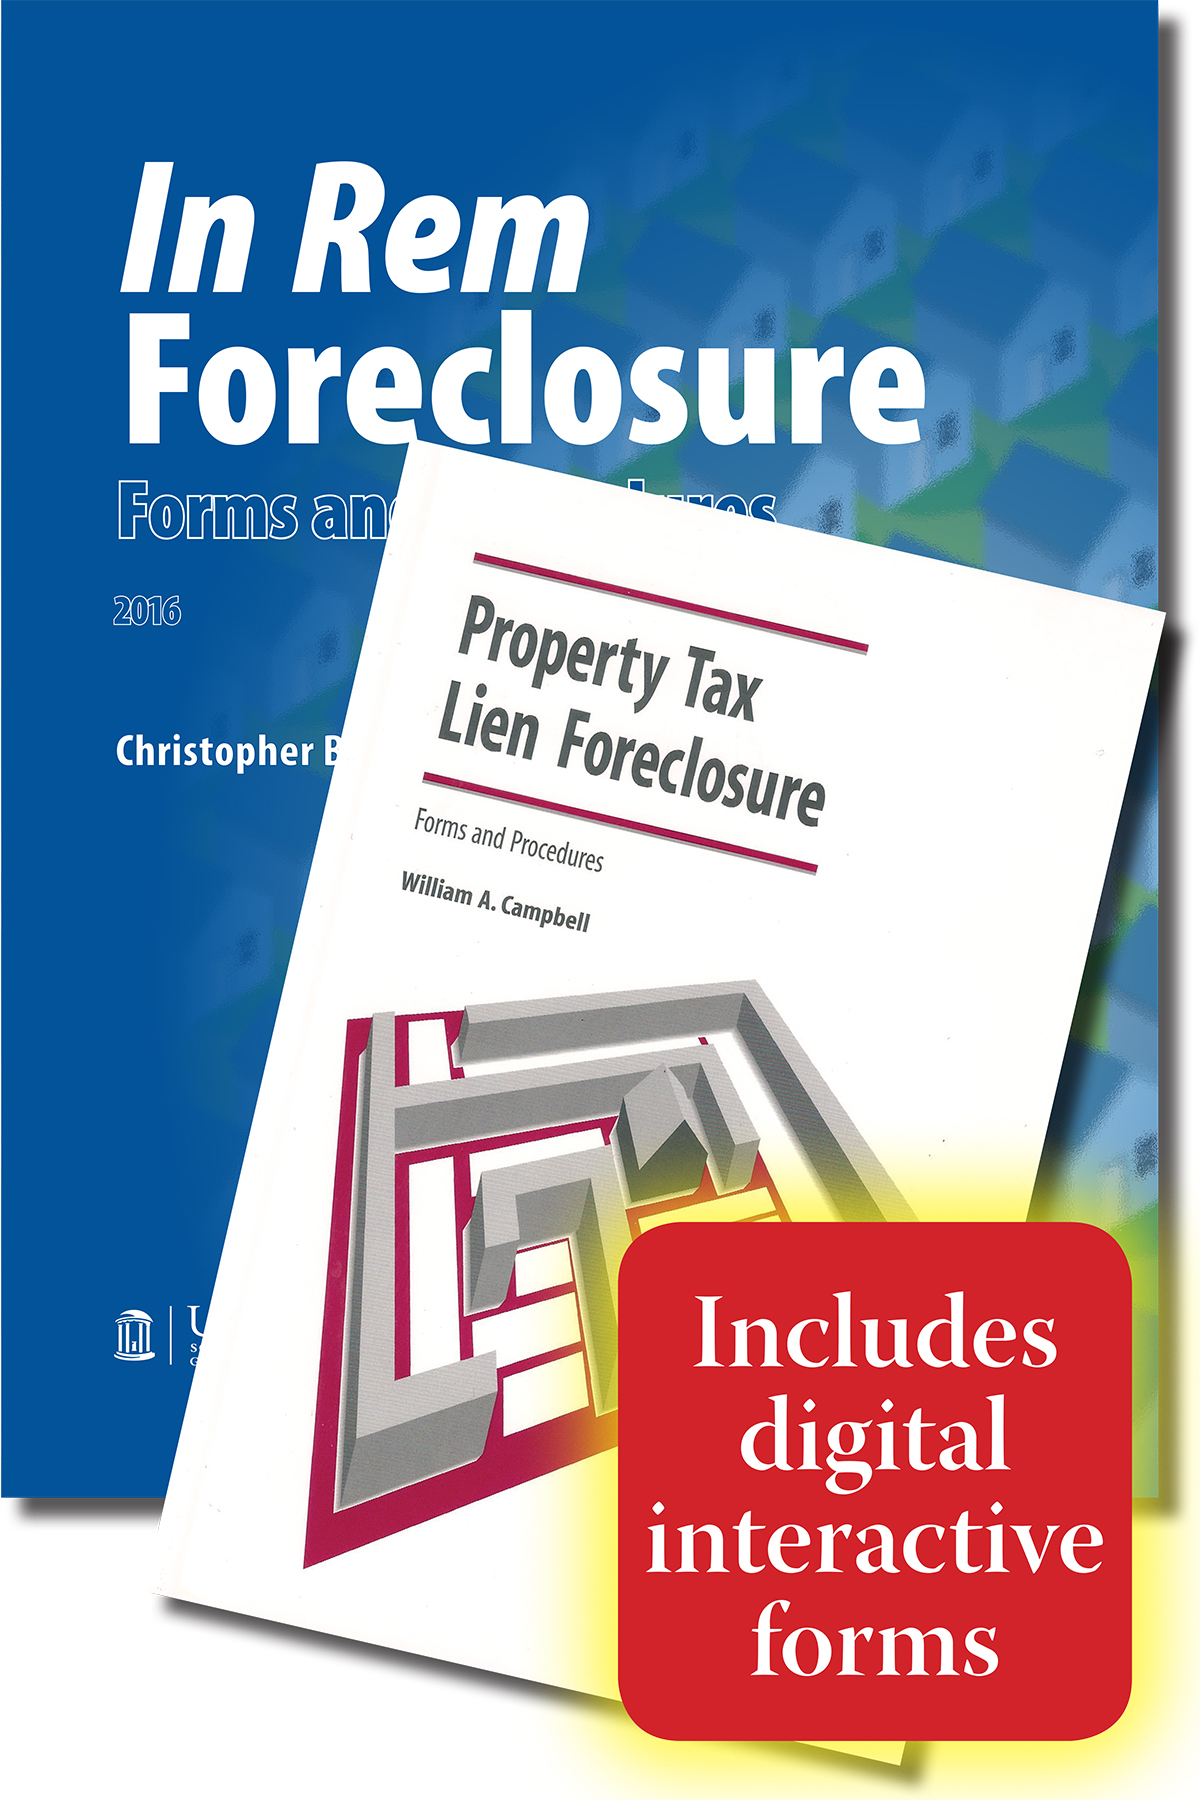 In Rem Foreclosure Forms and Procedures and Property Tax Lien Foreclosure Forms and Procedures Package with Digital Forms